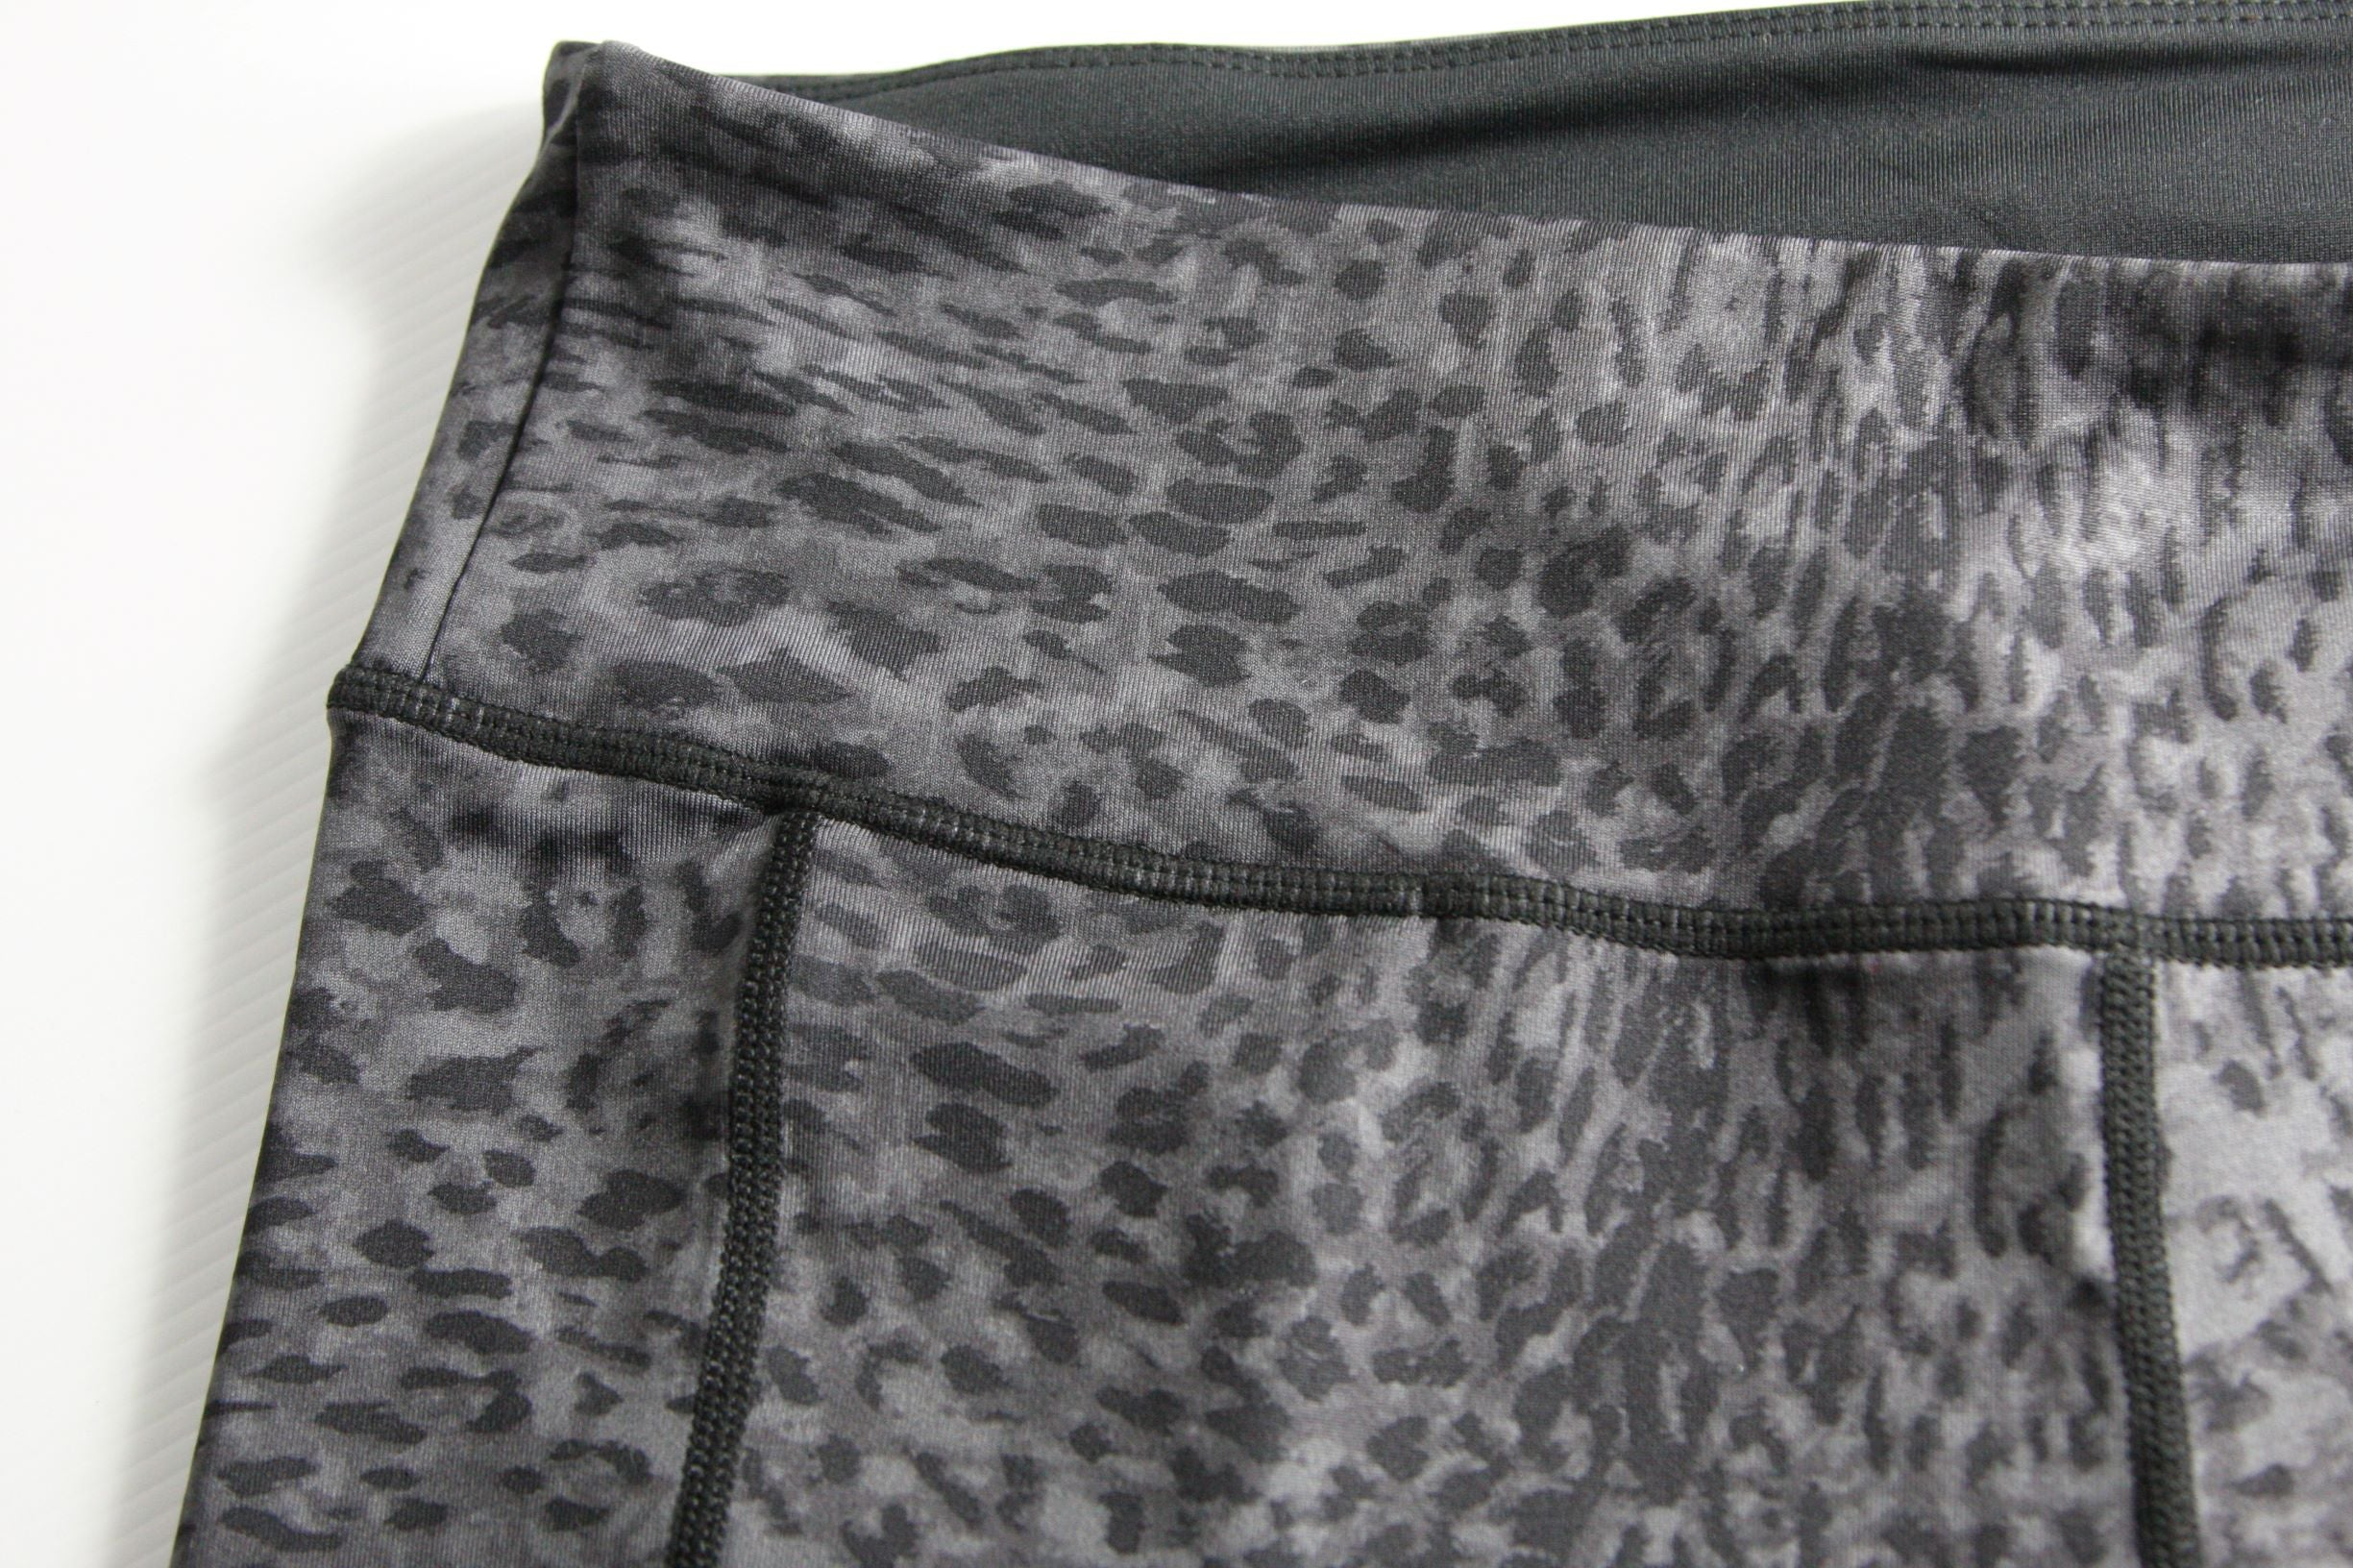 A close up of the thick waistabnd and seem detail of leopard print sports leggings in grey and black